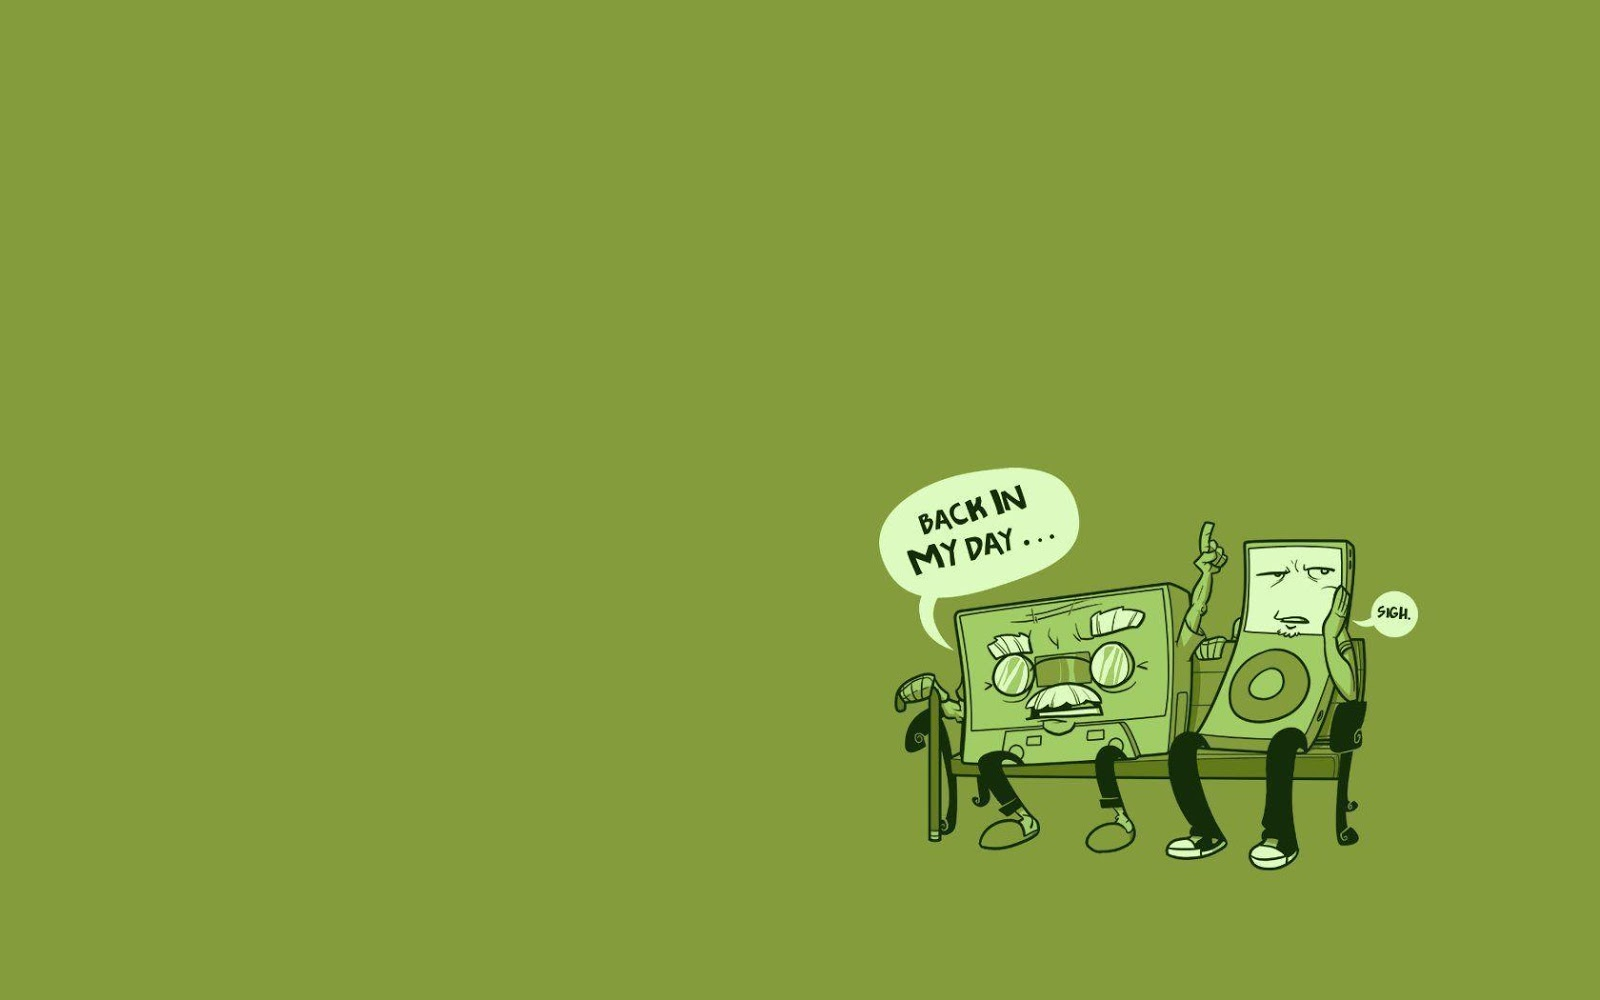 funny wallpaper green